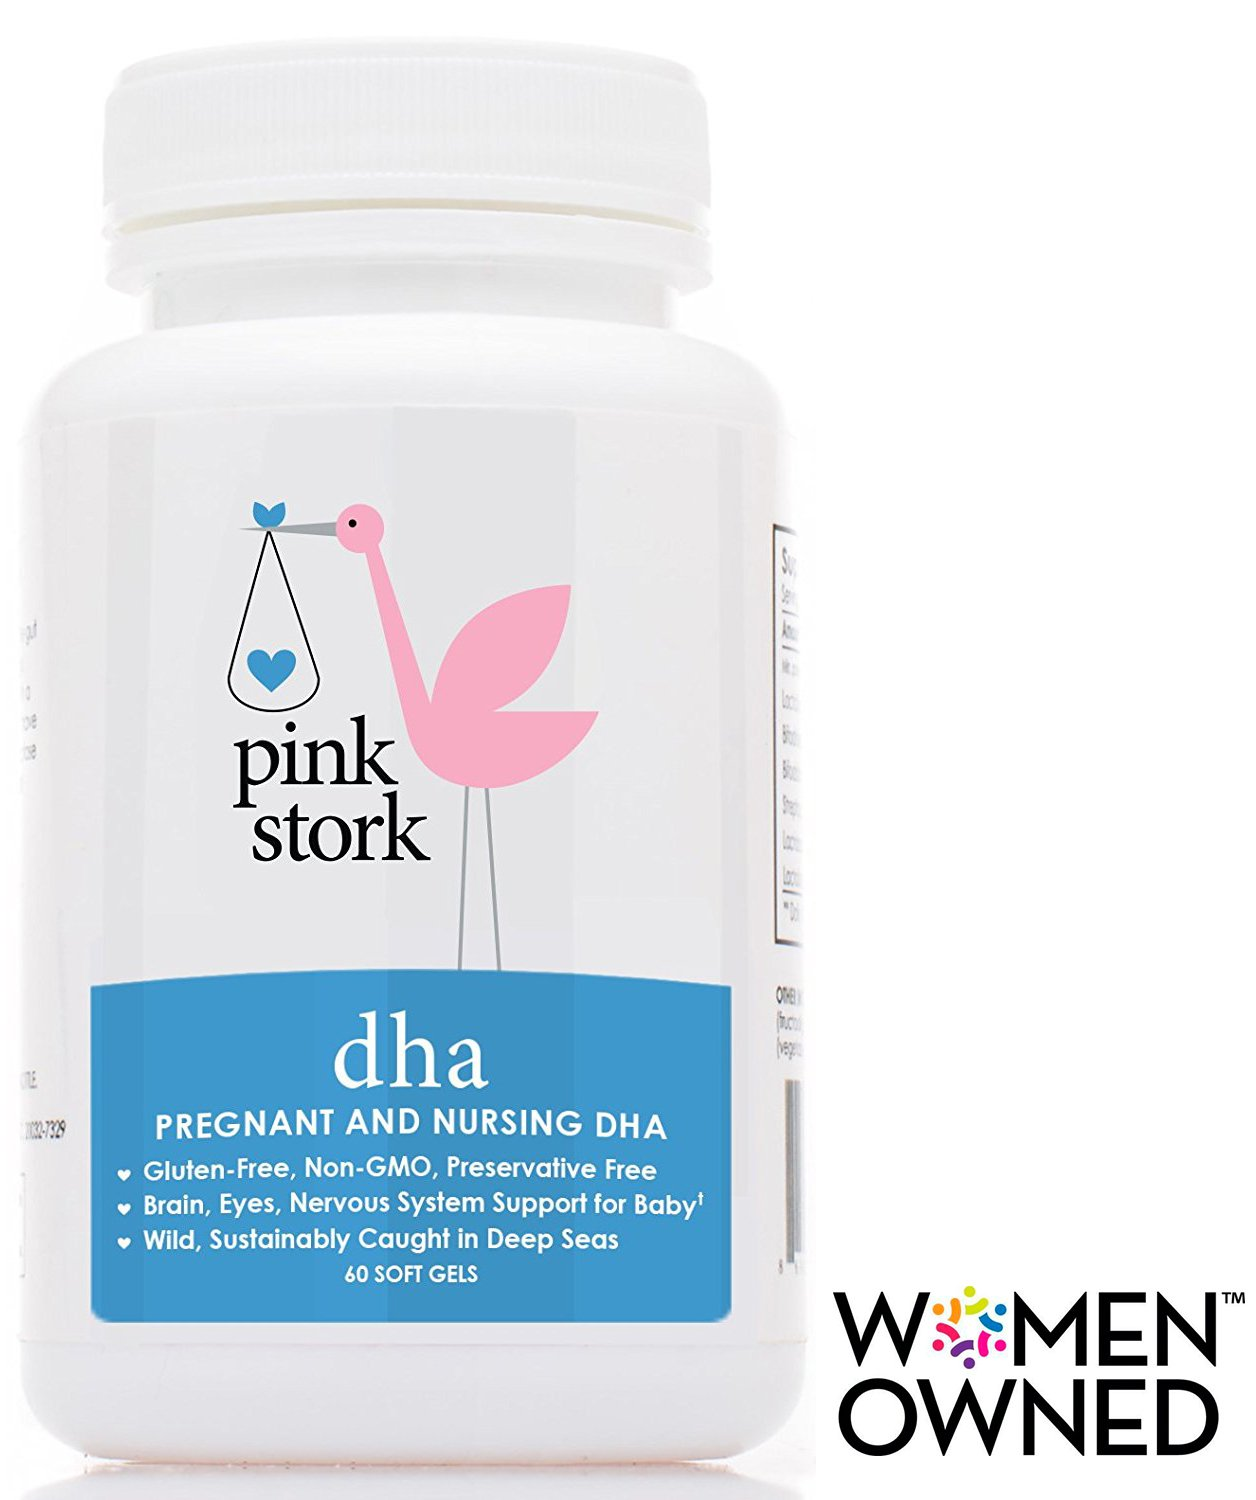 Pink Stork DHA: Prenatal & Nursing -1 Small Pill for 100% DV -Enhances Brain, Eye & Nervous System for Baby –Doctor Recommended -Wild-Caught -Non-GMO, Soy & Preservative-Free